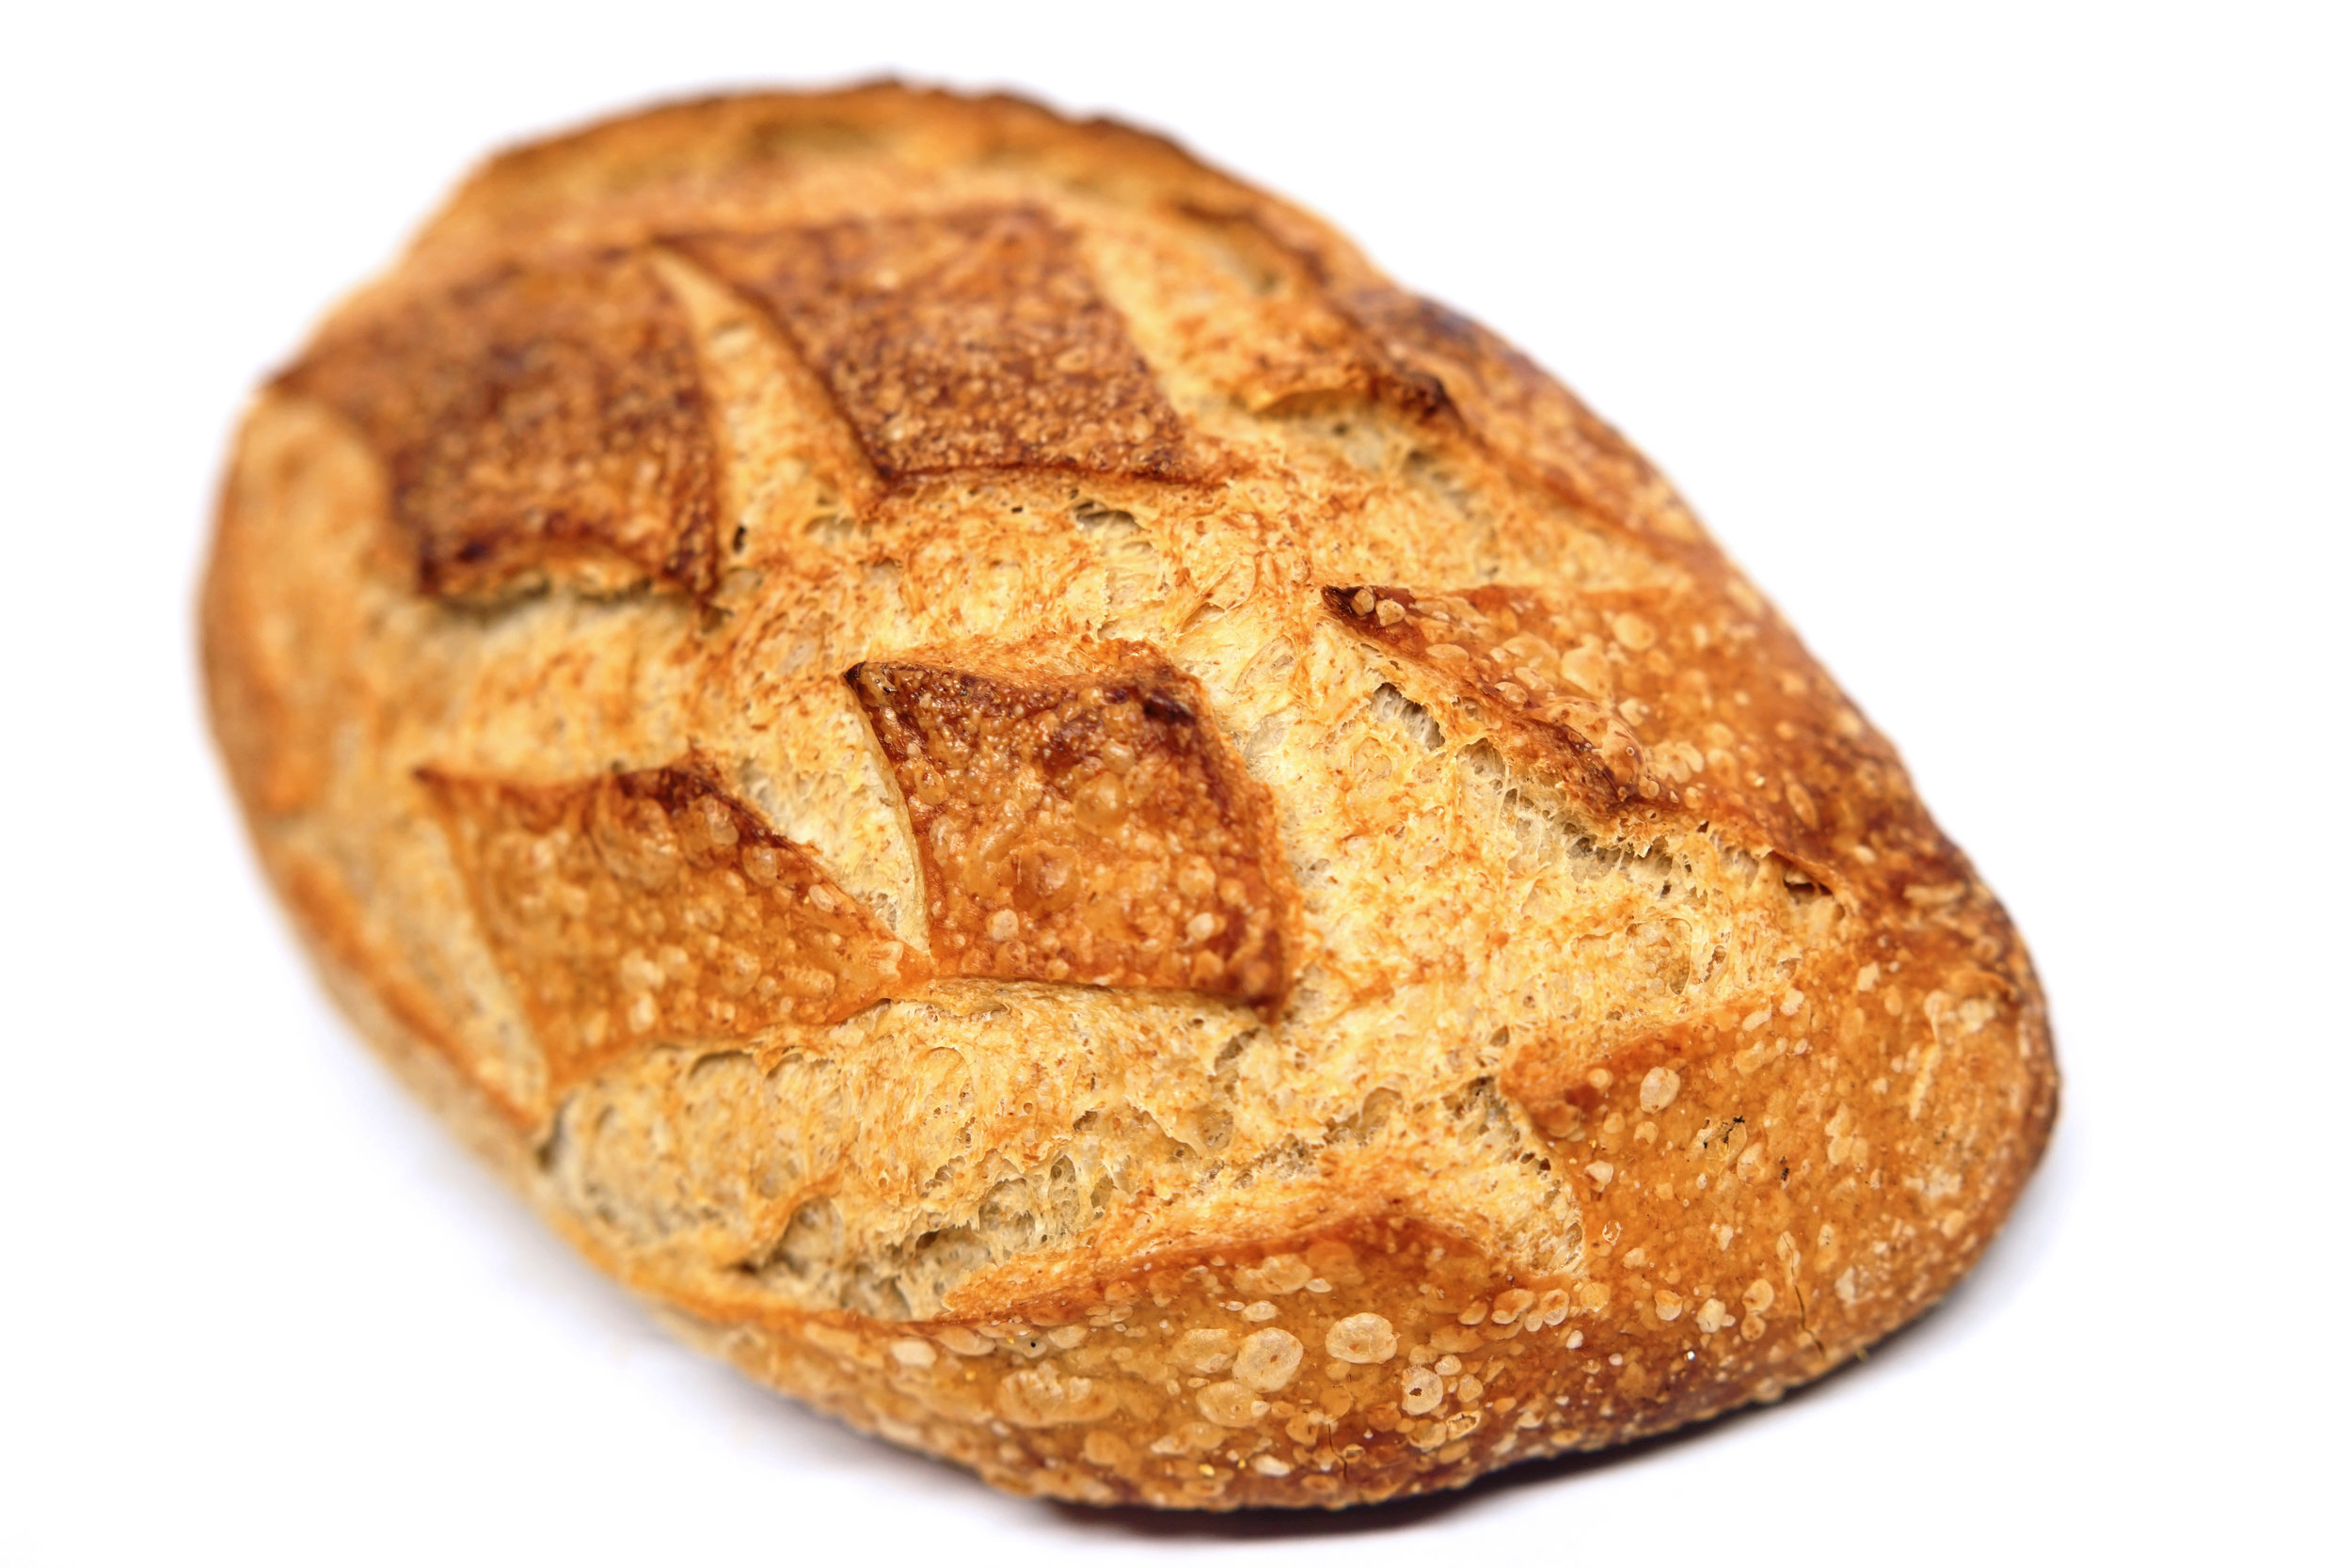 Whole Wheat Sourdough - All natural sourdough with a blend of whole wheat and unbleached flour.*Tuesday to Saturday